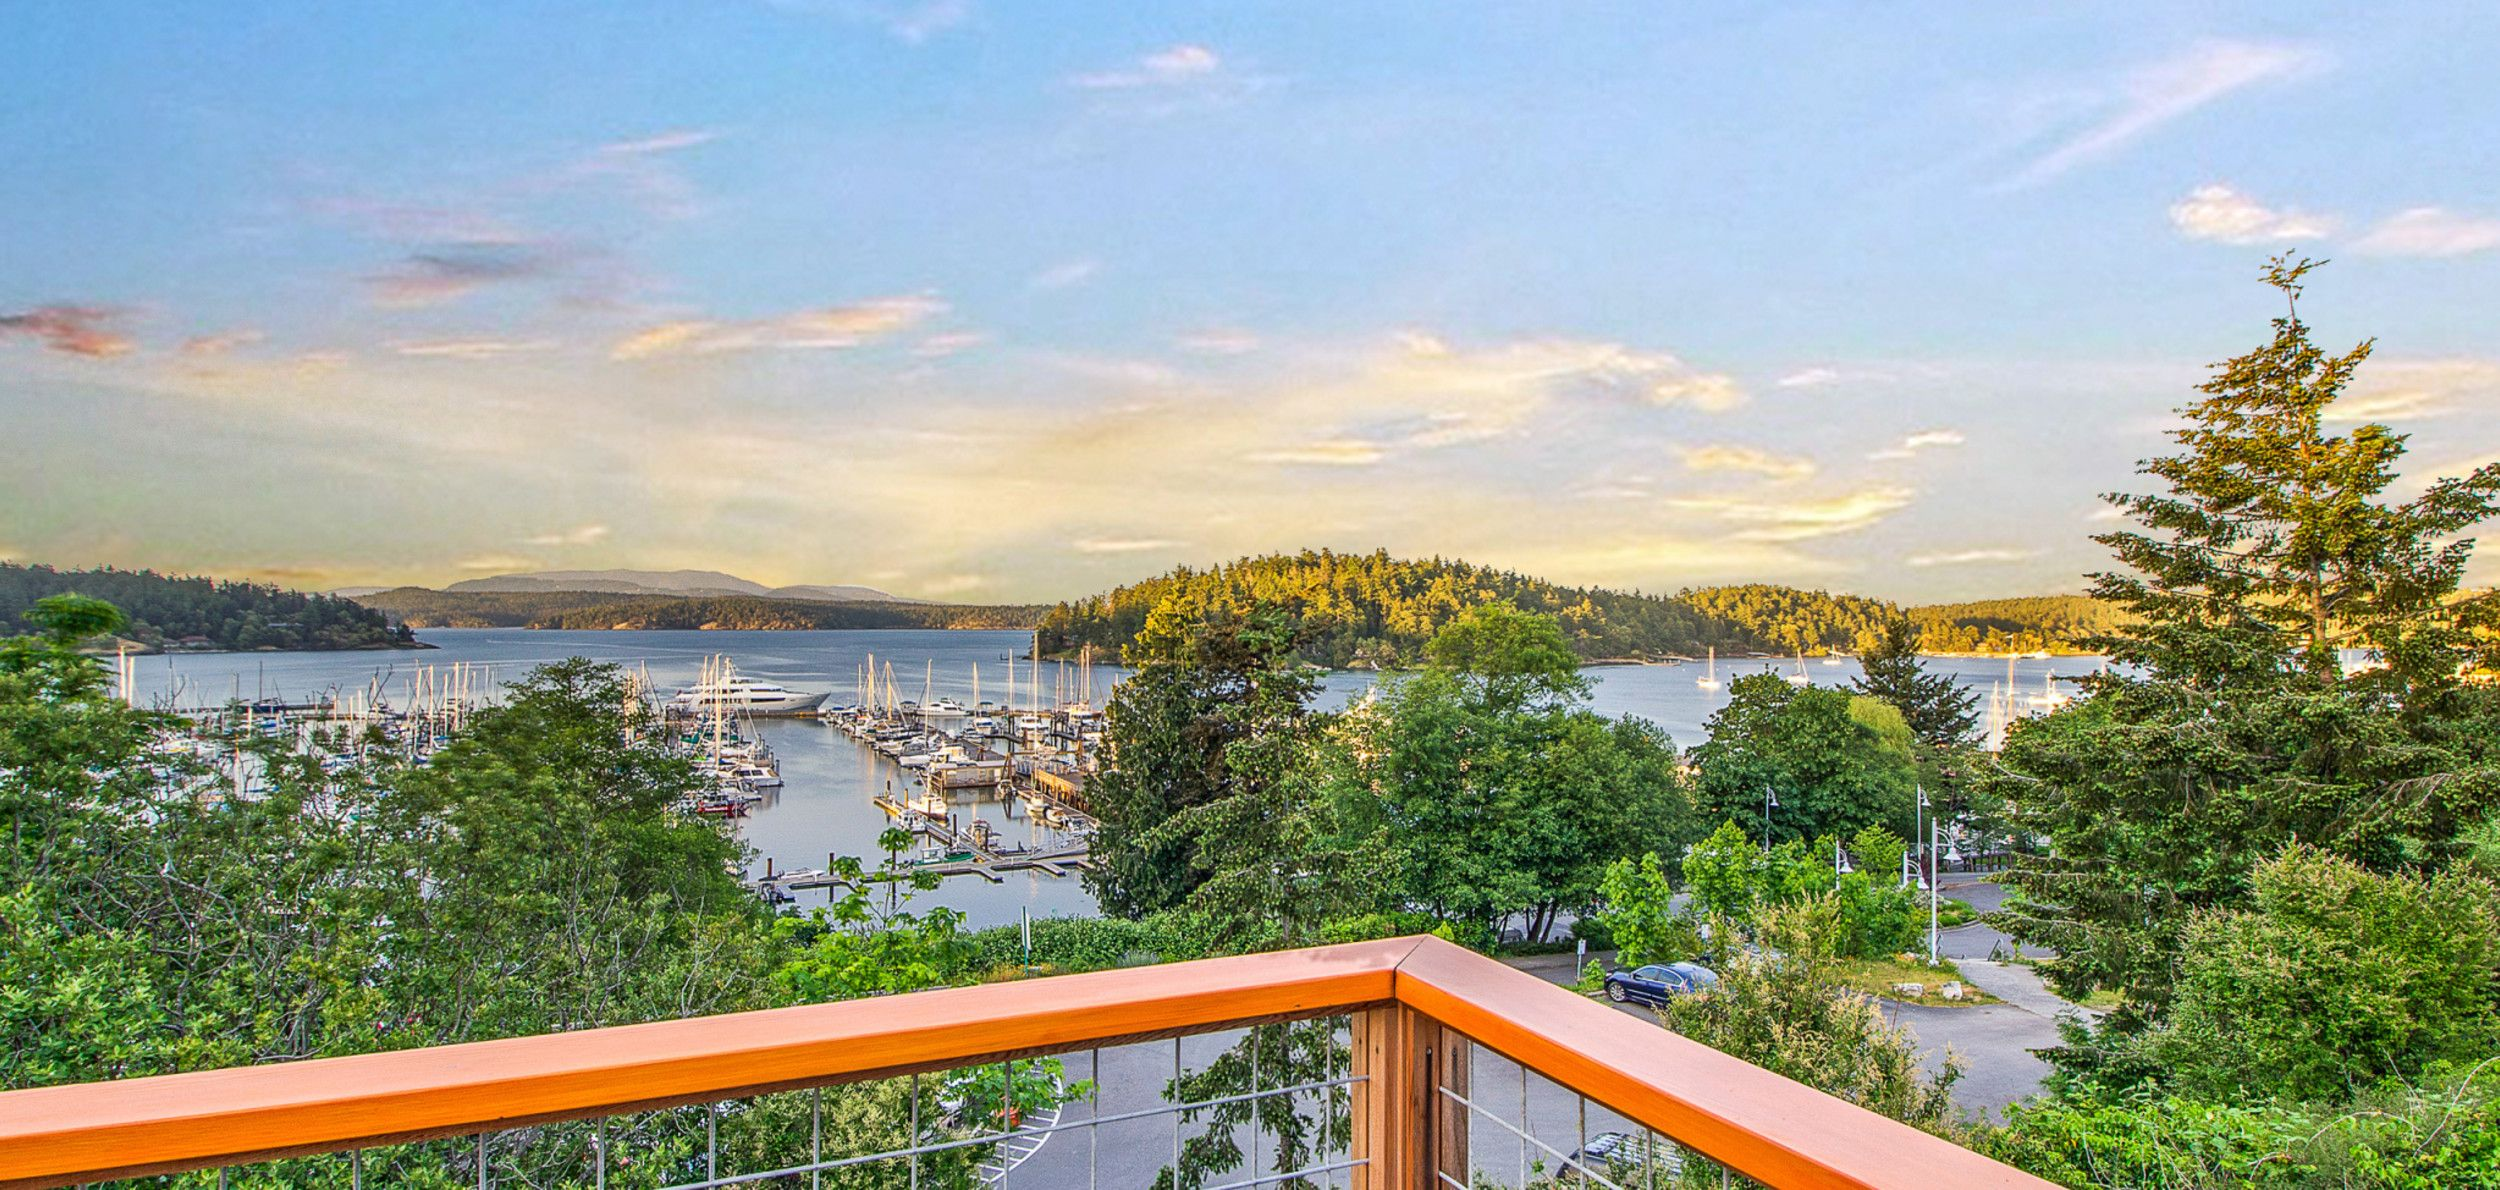 Cannery Inn & Suites - Deck View